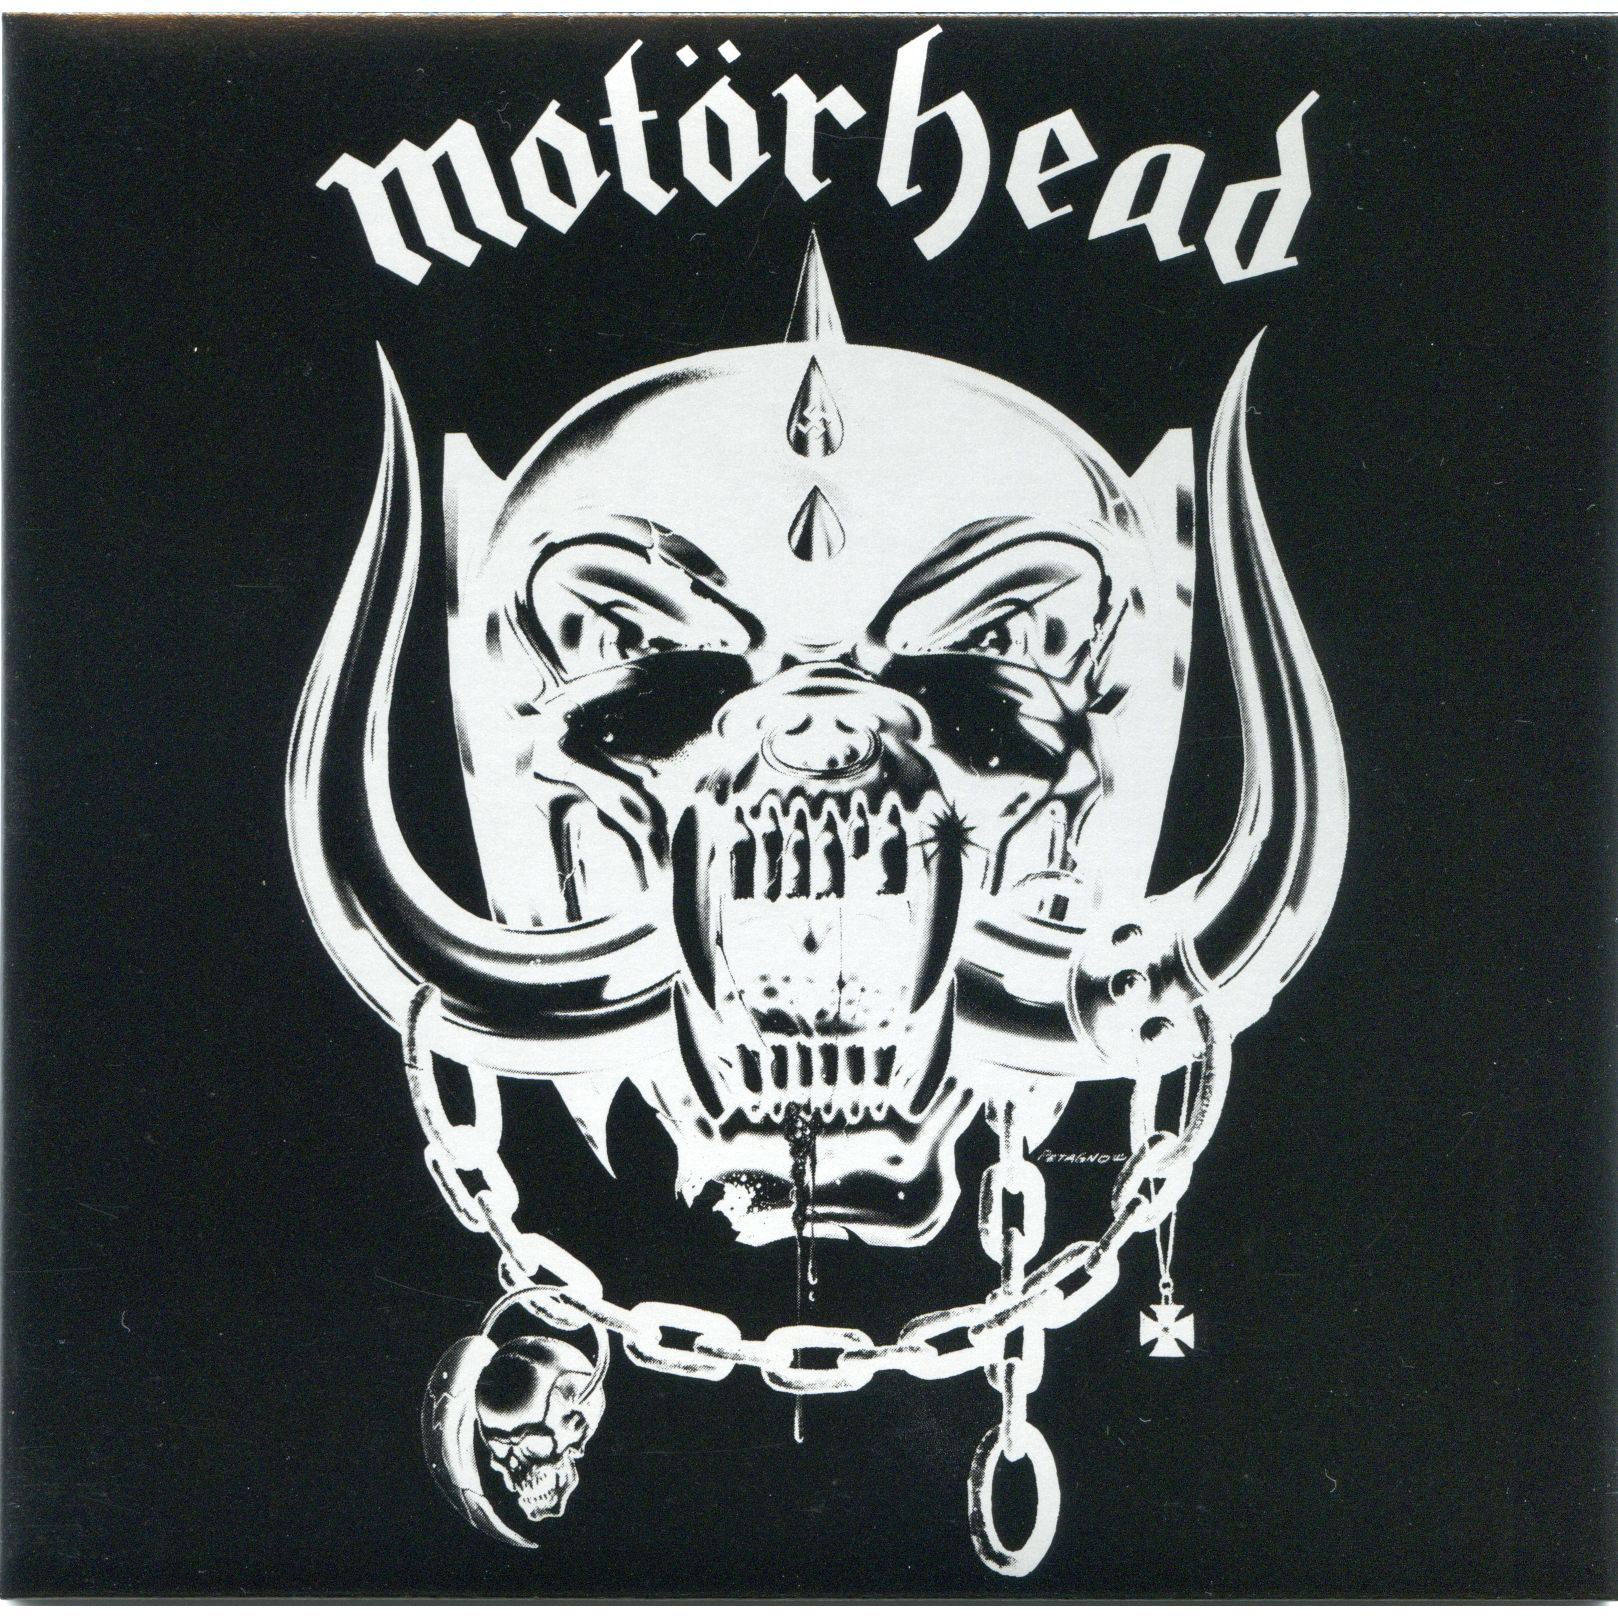 3/1/16 - Motörhead - 1977 - In Deep Music Archive